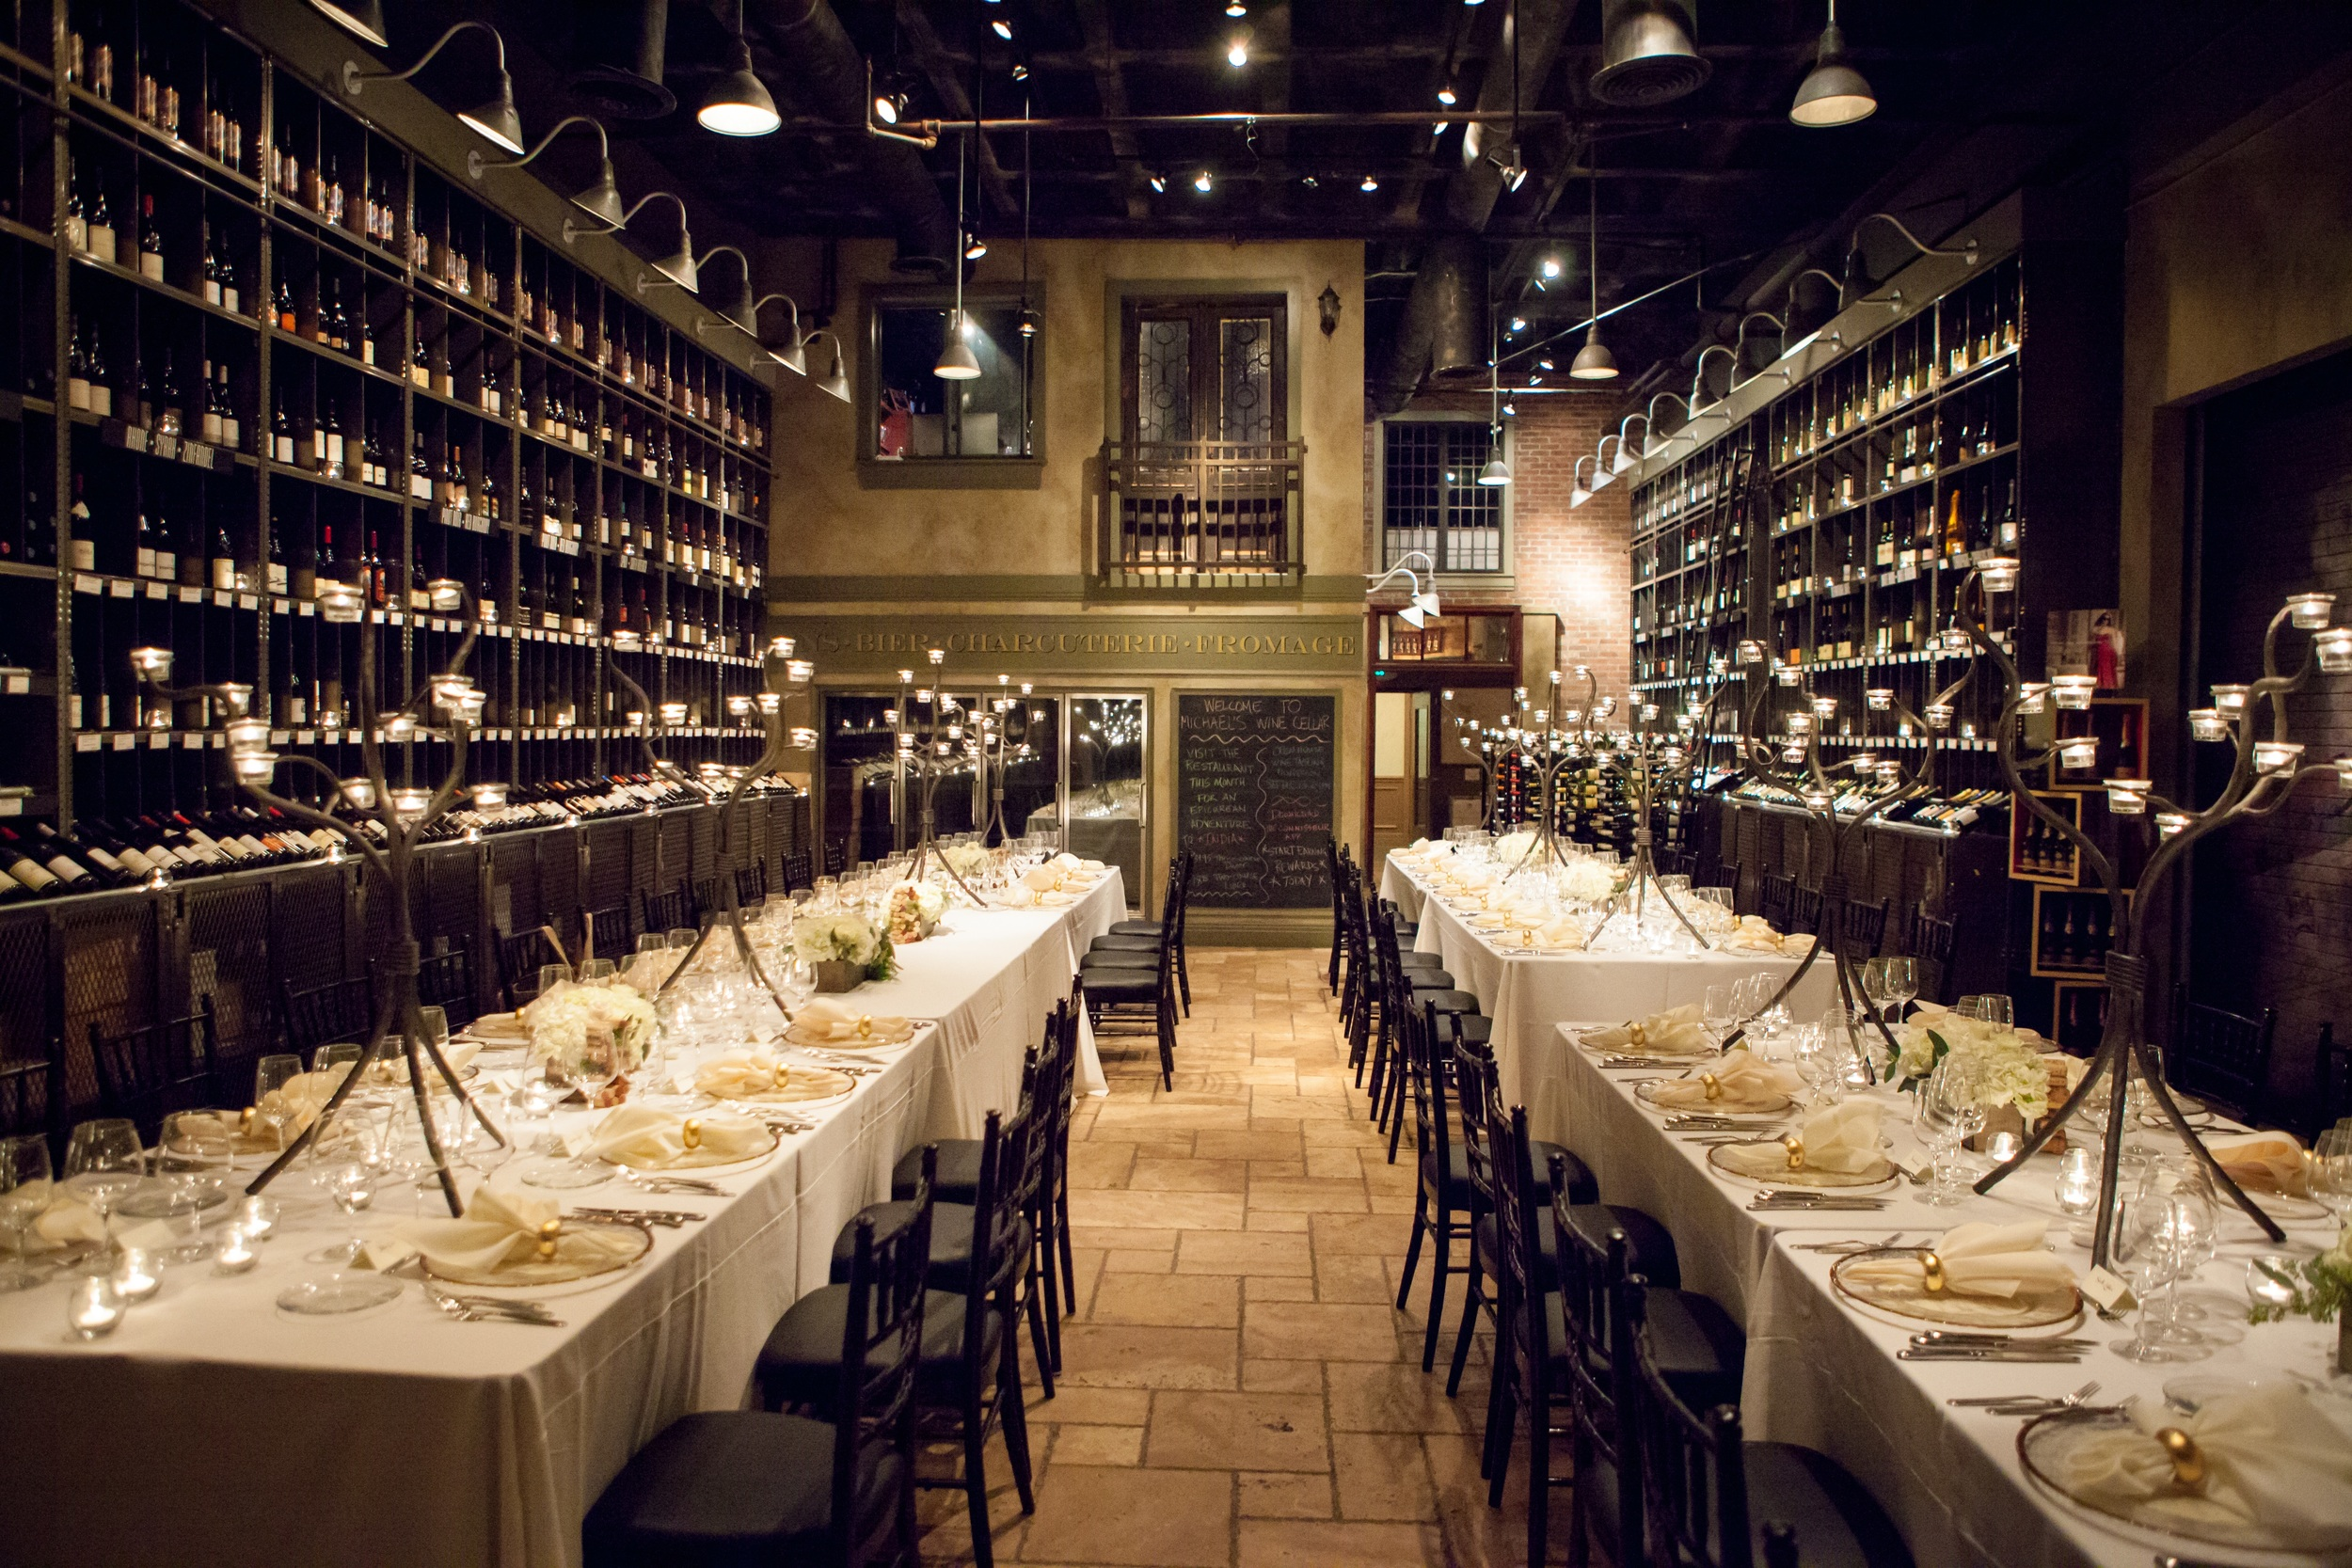 Feasting tables were set in the wine cellar and lined with iron candelabras